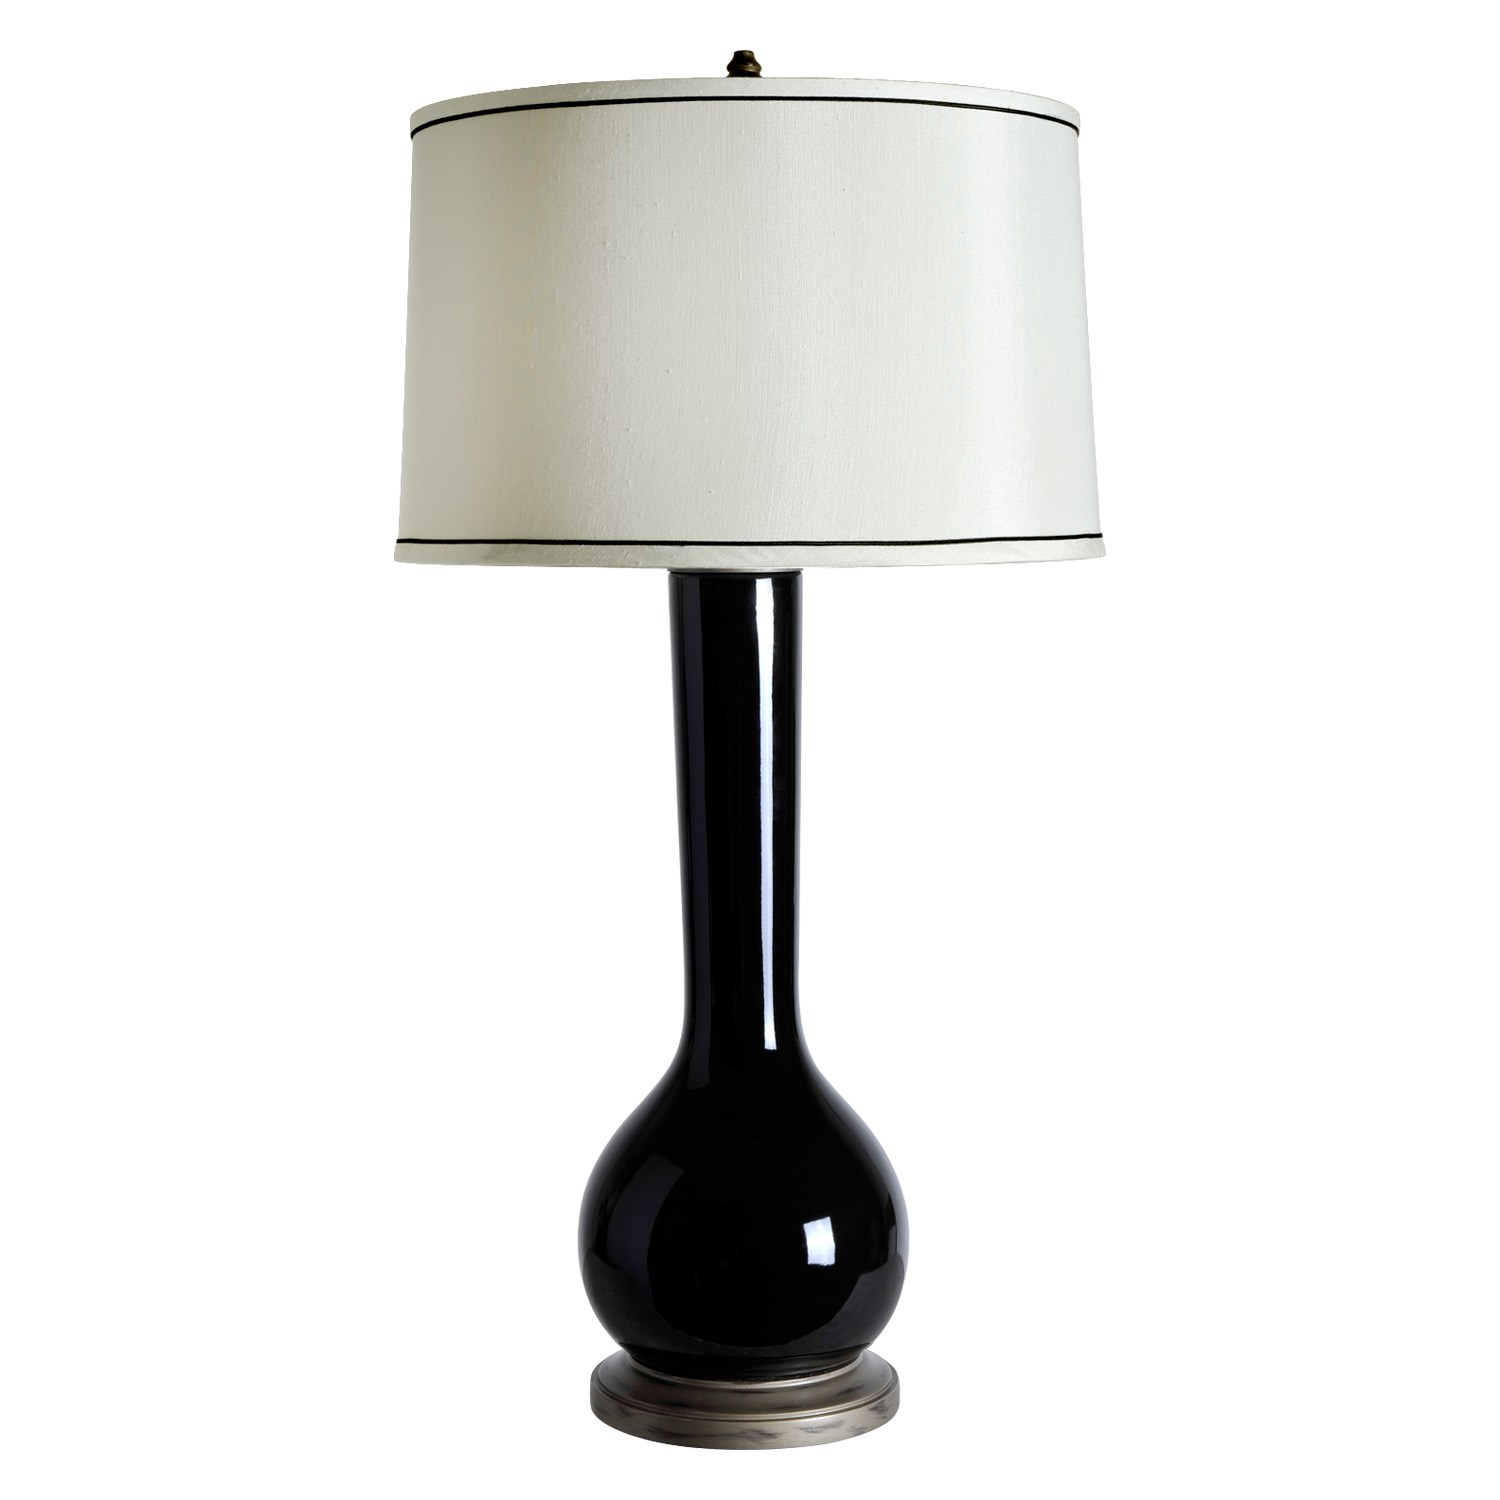 Zinc Door Bungalow 5 Ceylon Black Lamp